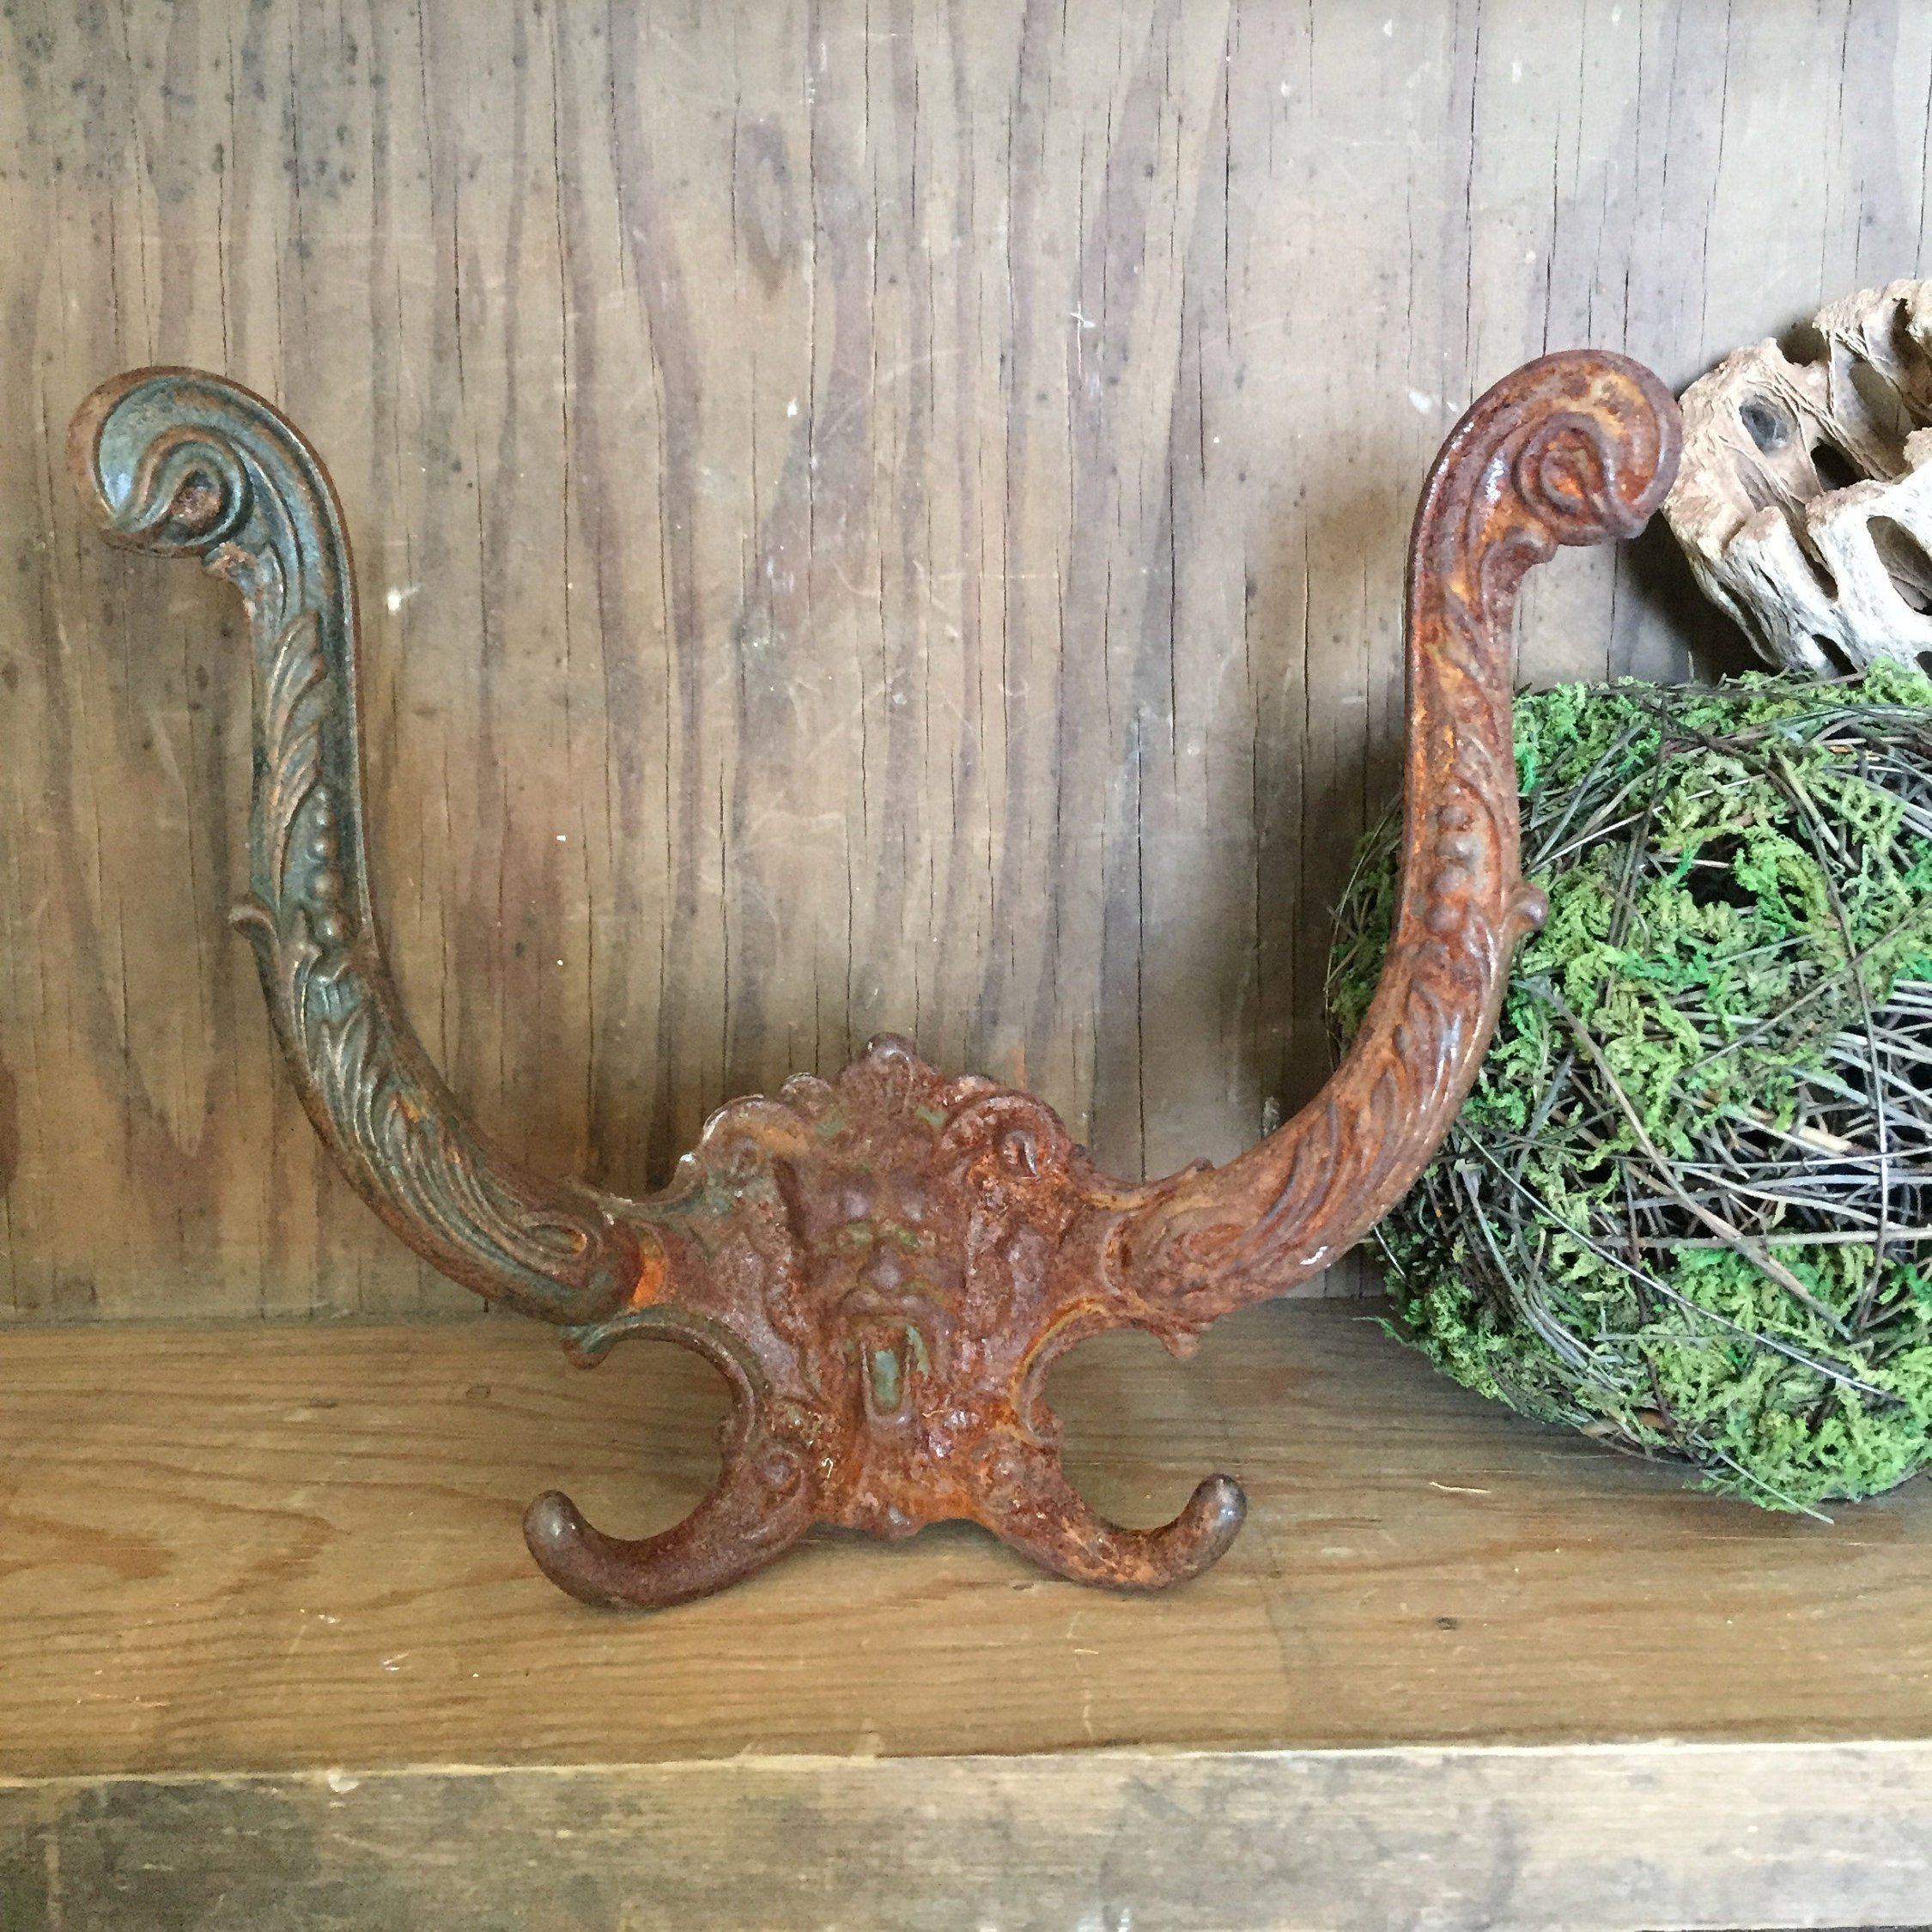 Vintage And Rusty Double Coat Hook Farmhouse Victorian Hall Tree Towel Hook With Face Patina Modern Industrial Large H Victorian Hall Trees Vintage Towel Hooks